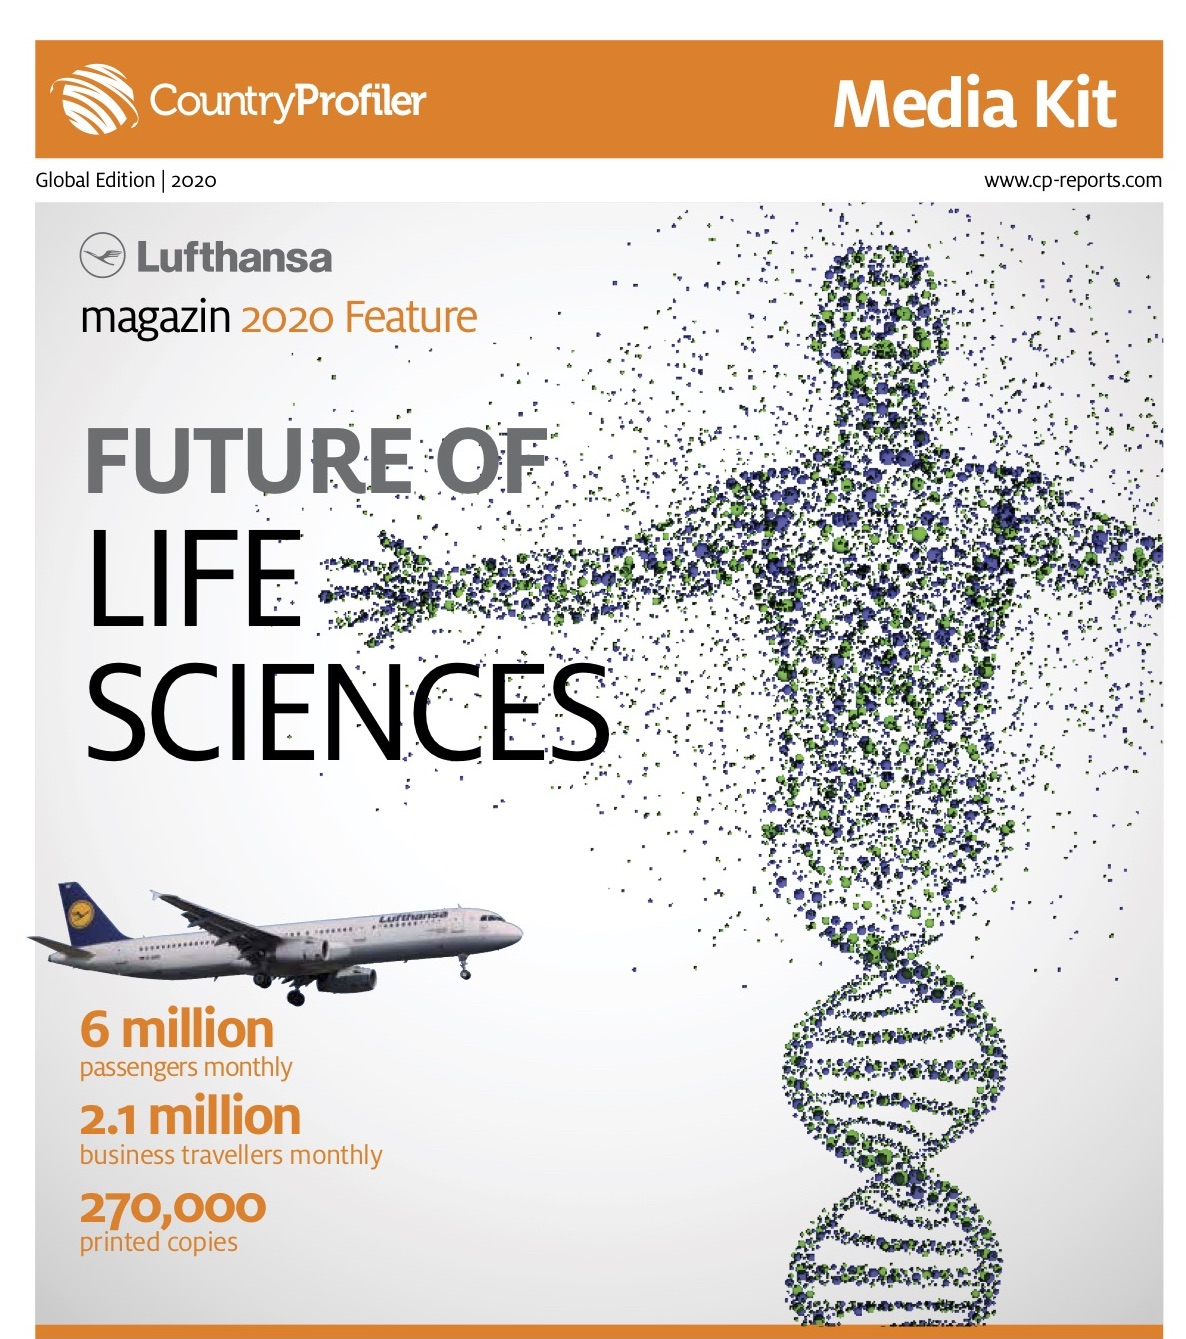 Future of Life Sciences, Lufthansa magazin